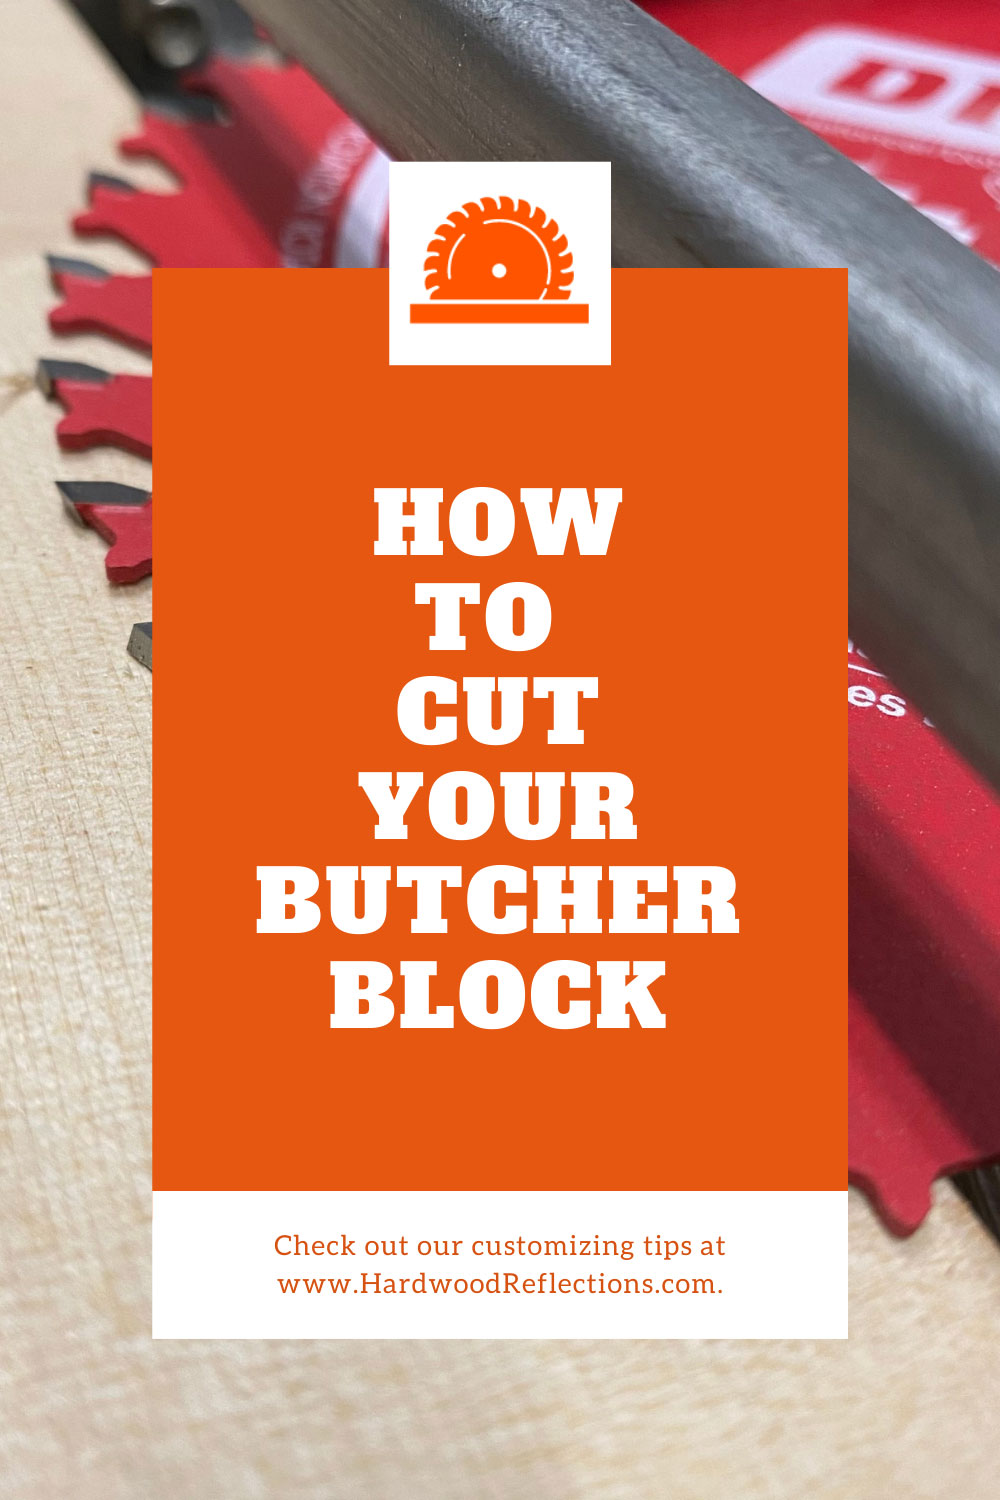 How to Cut Your Butcher Block